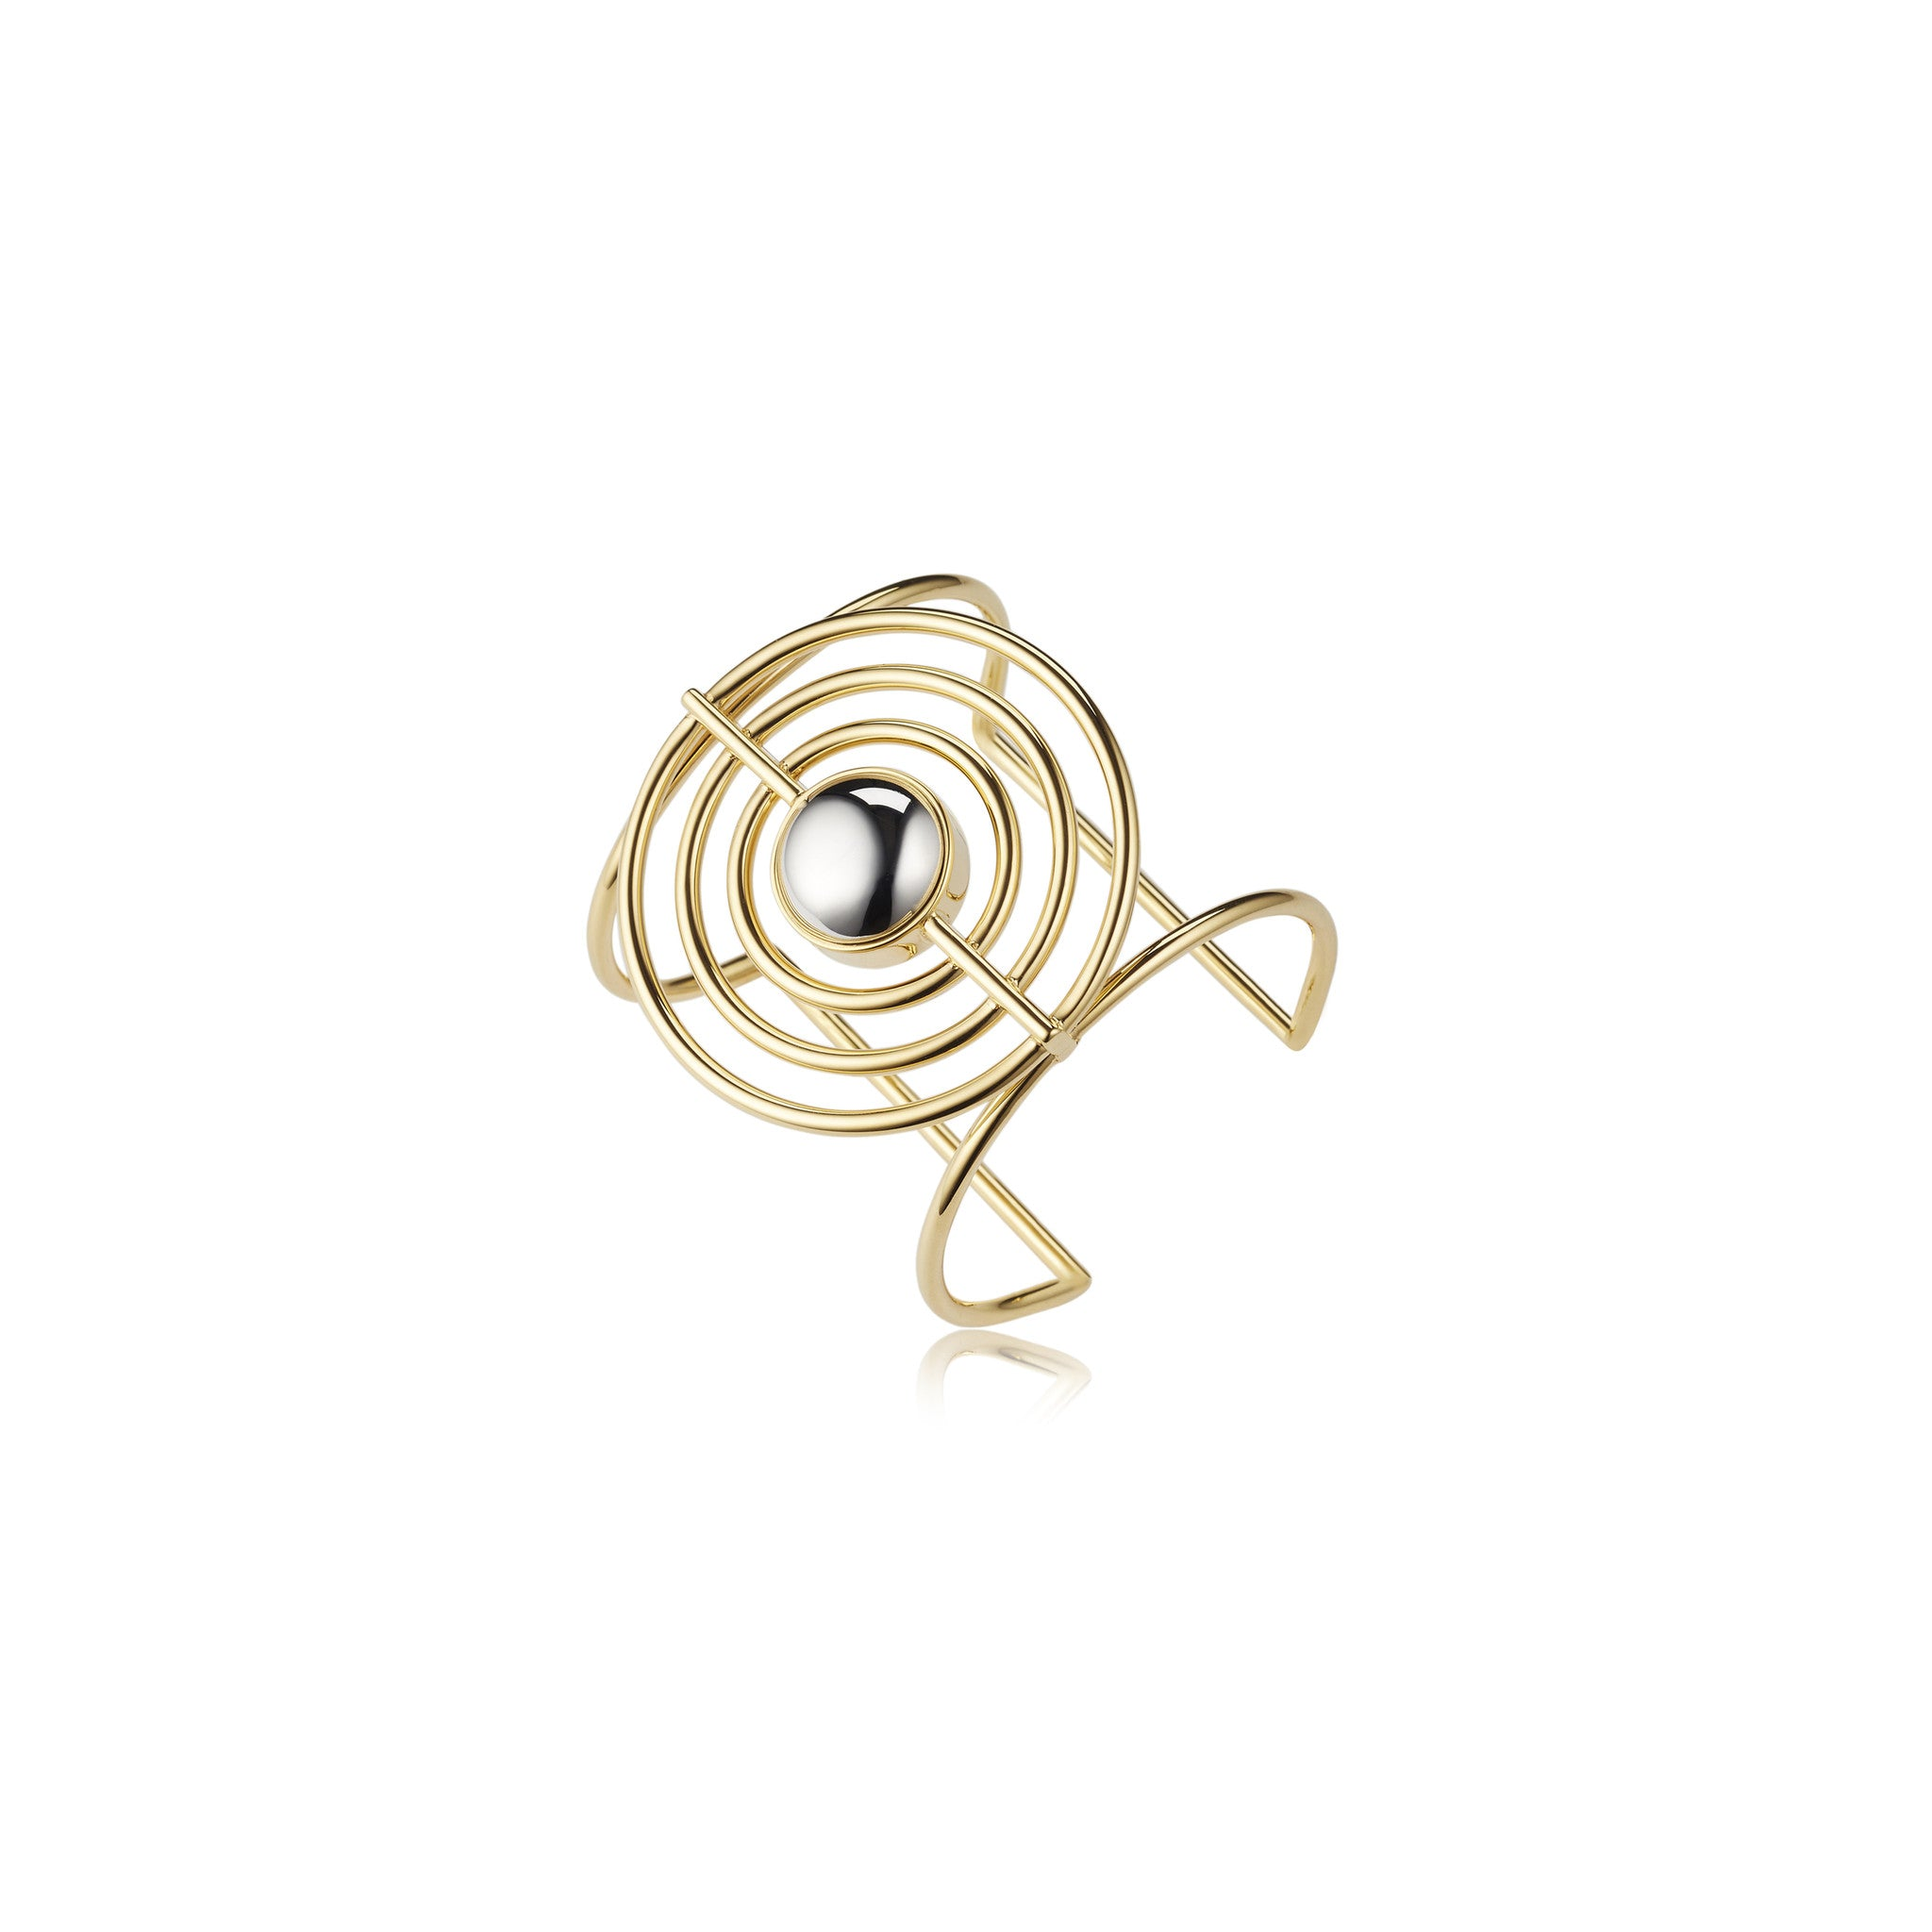 Solid brass, Splendidus Saturn ring features contrasting 18K gold and rhodium plating – side